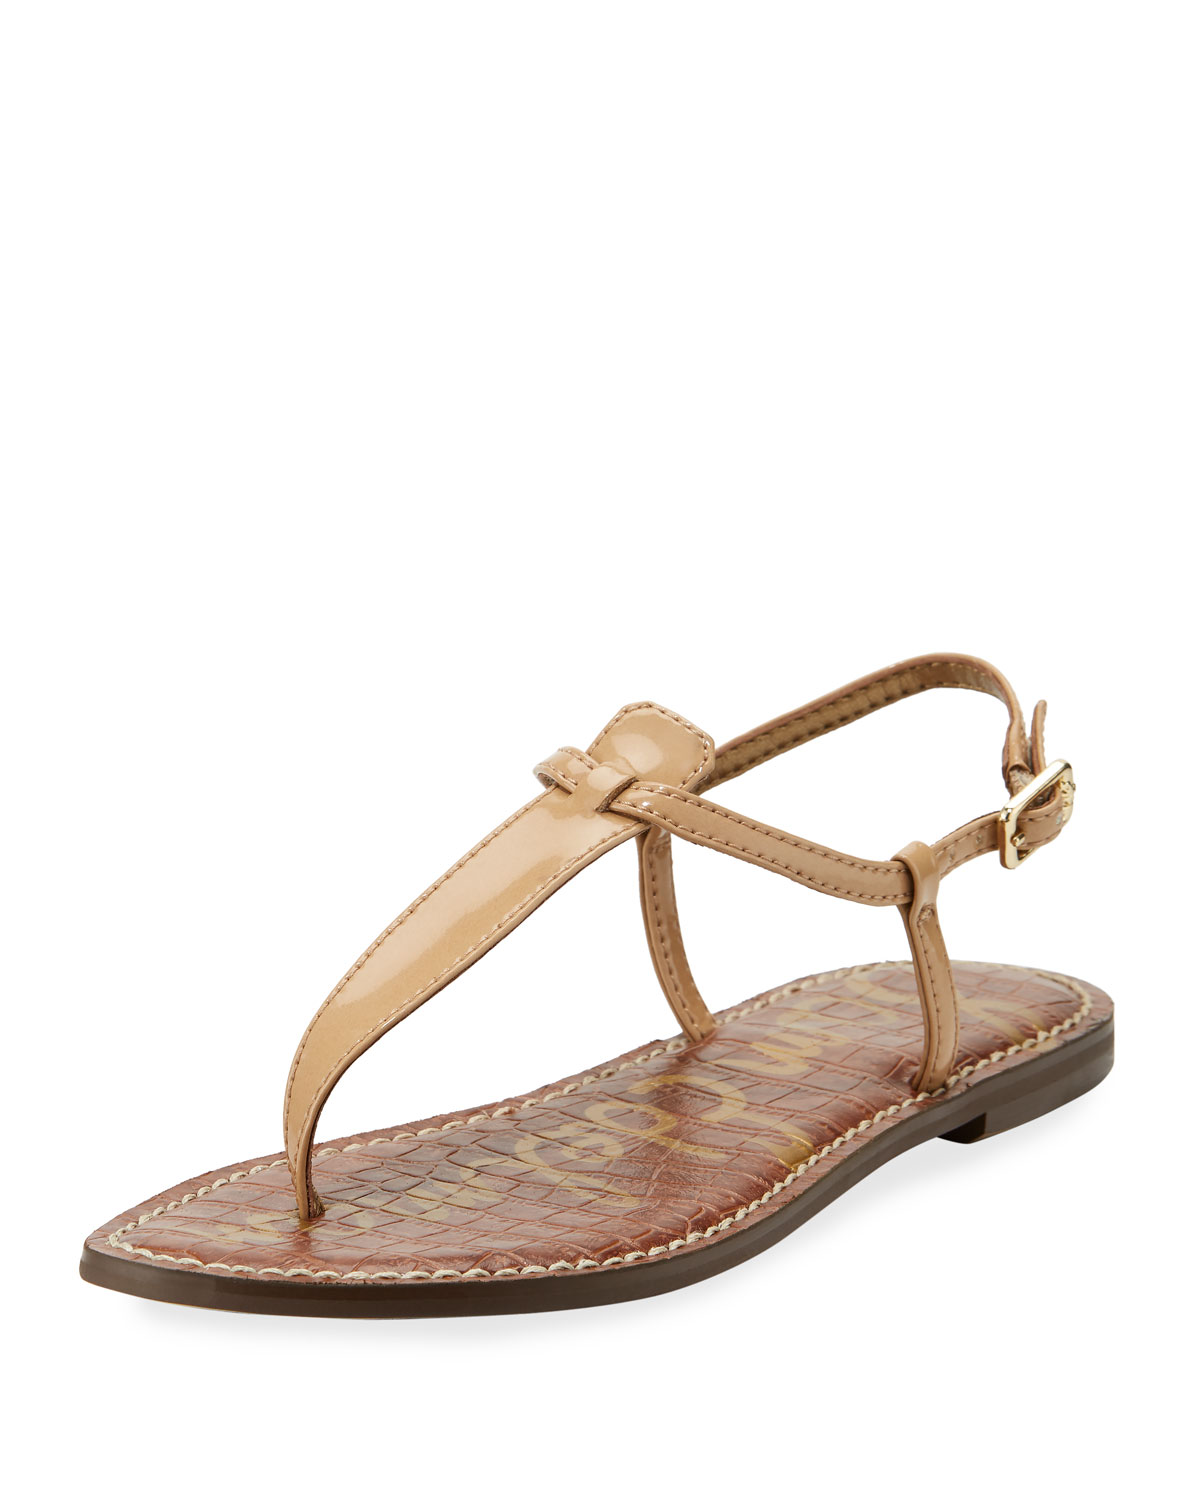 1140f3966 Sam Edelman Gigi Patent Leather Flat Thong Sandal